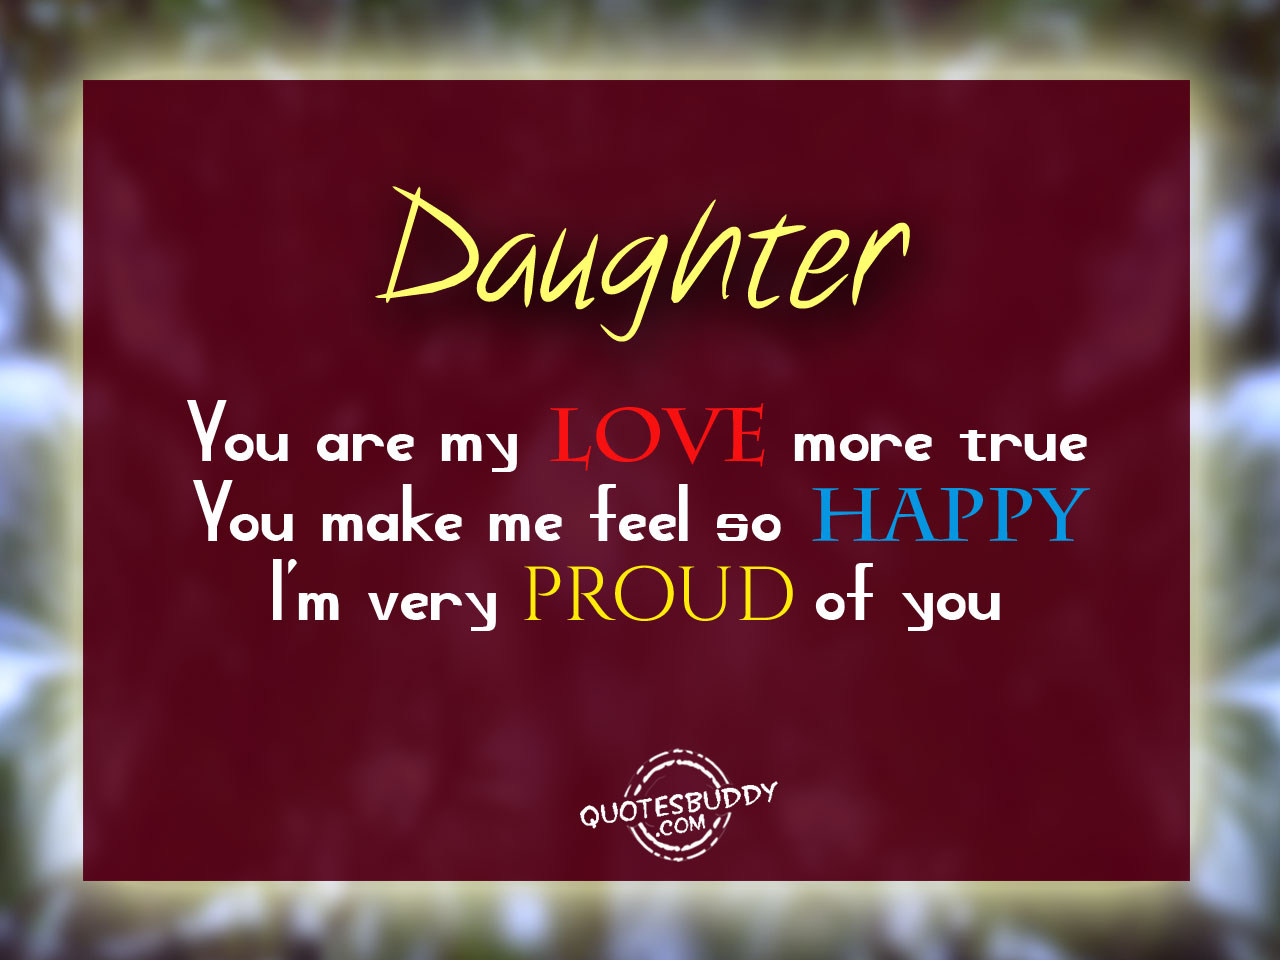 Daughter Quotes Clipart 20 Free Cliparts  Download Images -2904